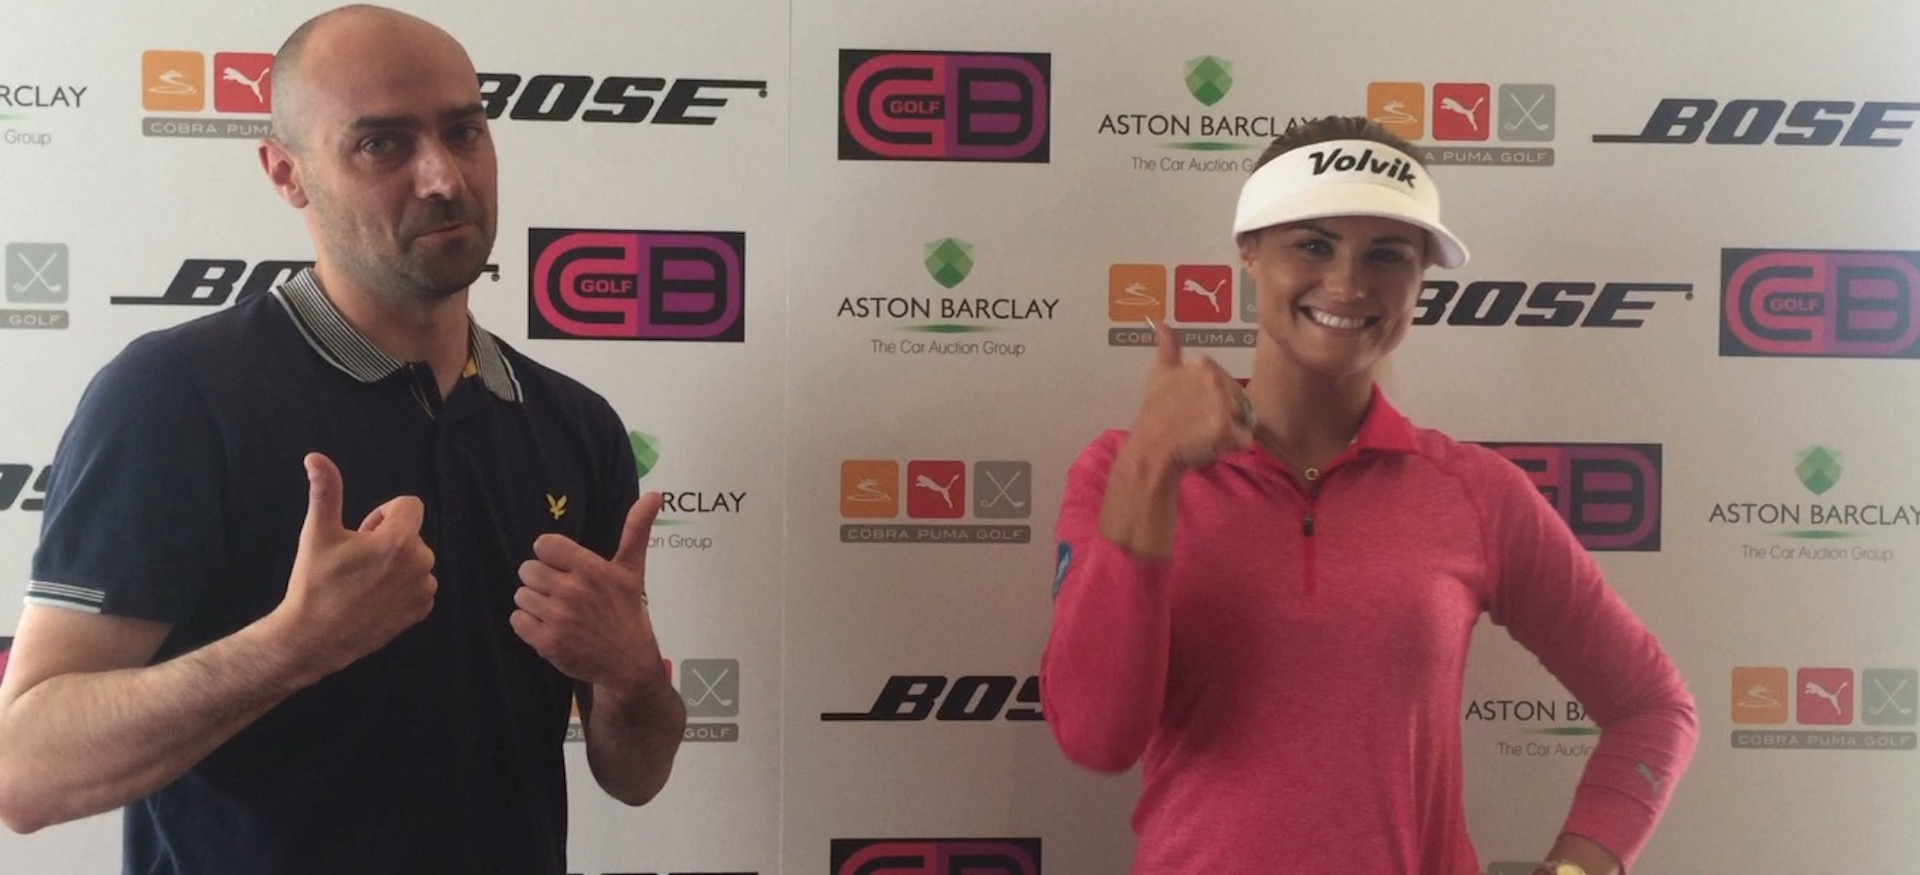 Carly Booth's golf day